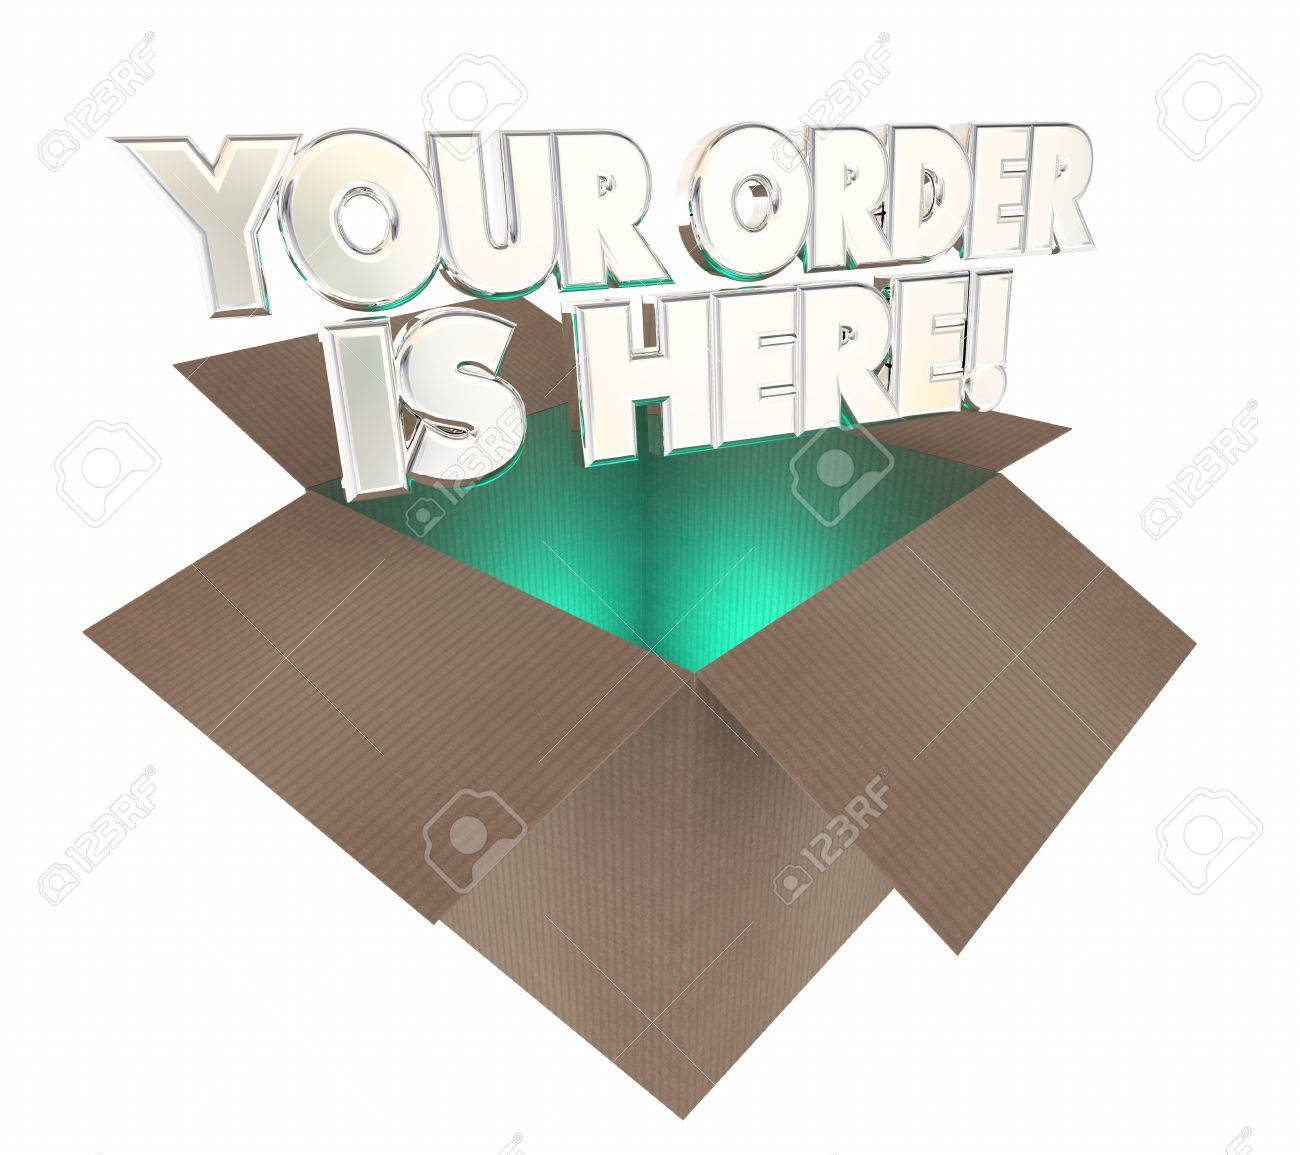 Your order is here box package arrived 3d illustration stock photo your order is here box package arrived 3d illustration stock illustration 66532186 buycottarizona Gallery